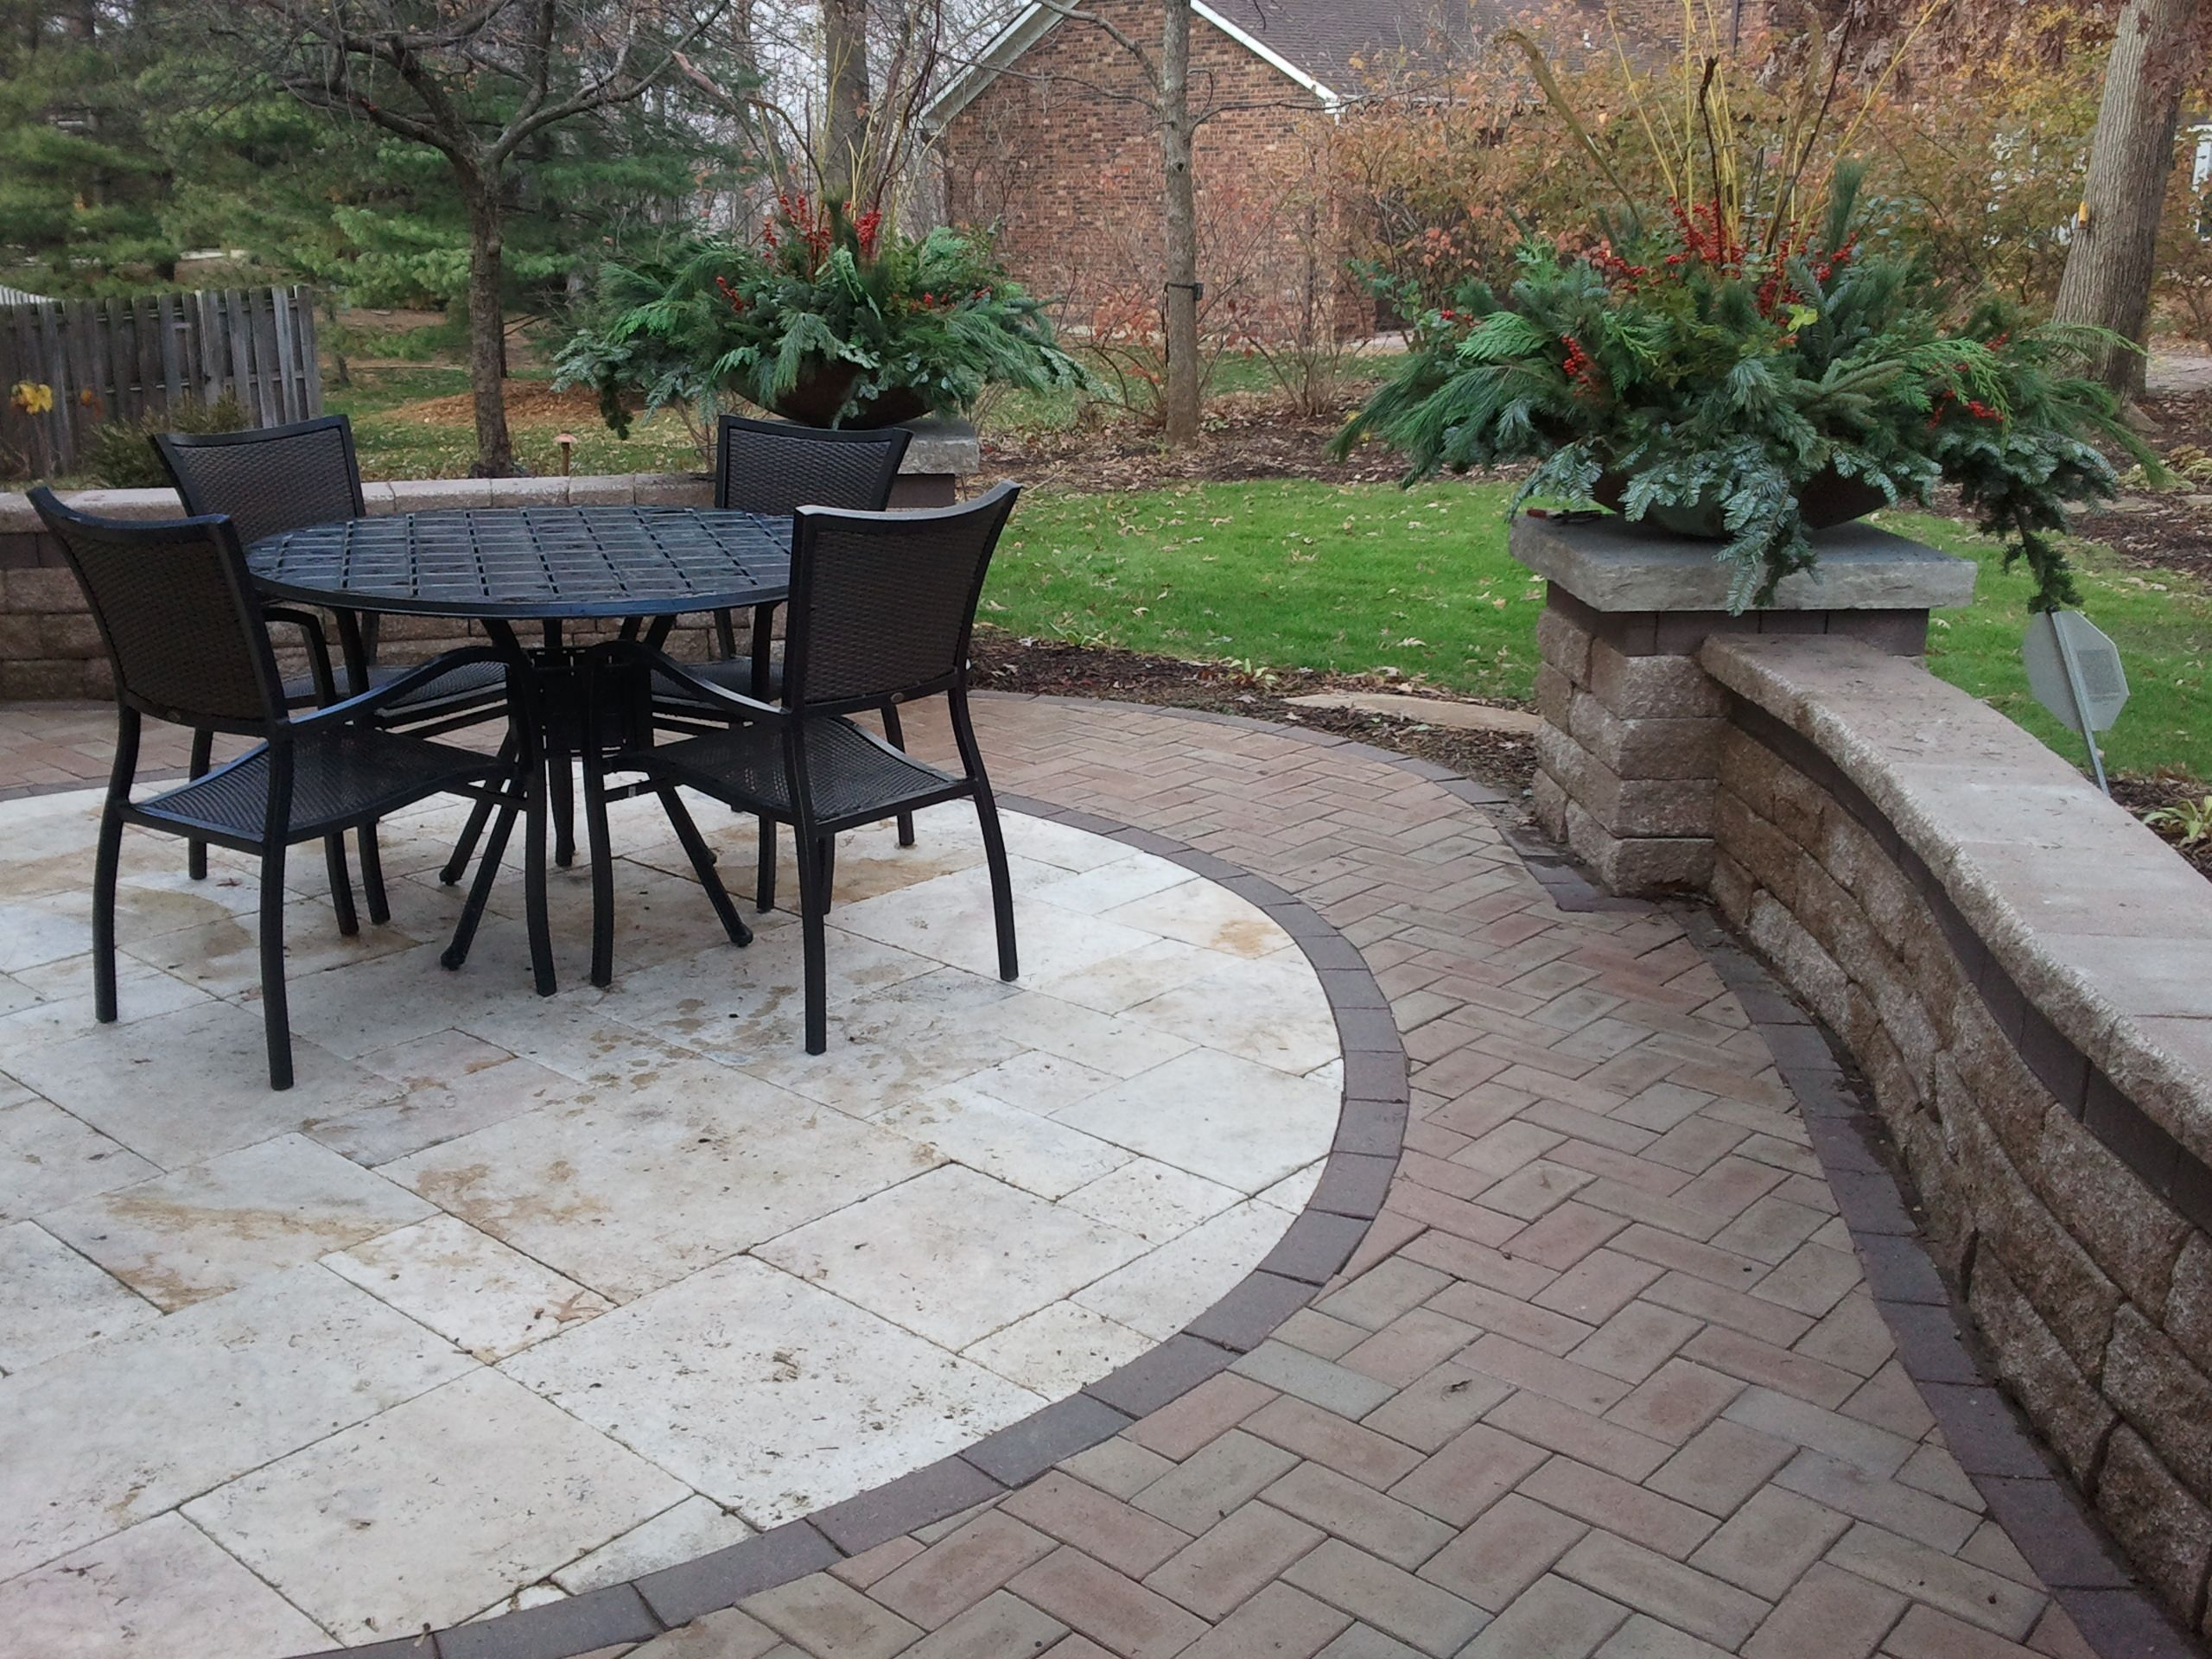 coppertree design travertine patio with clay pavers and sitting